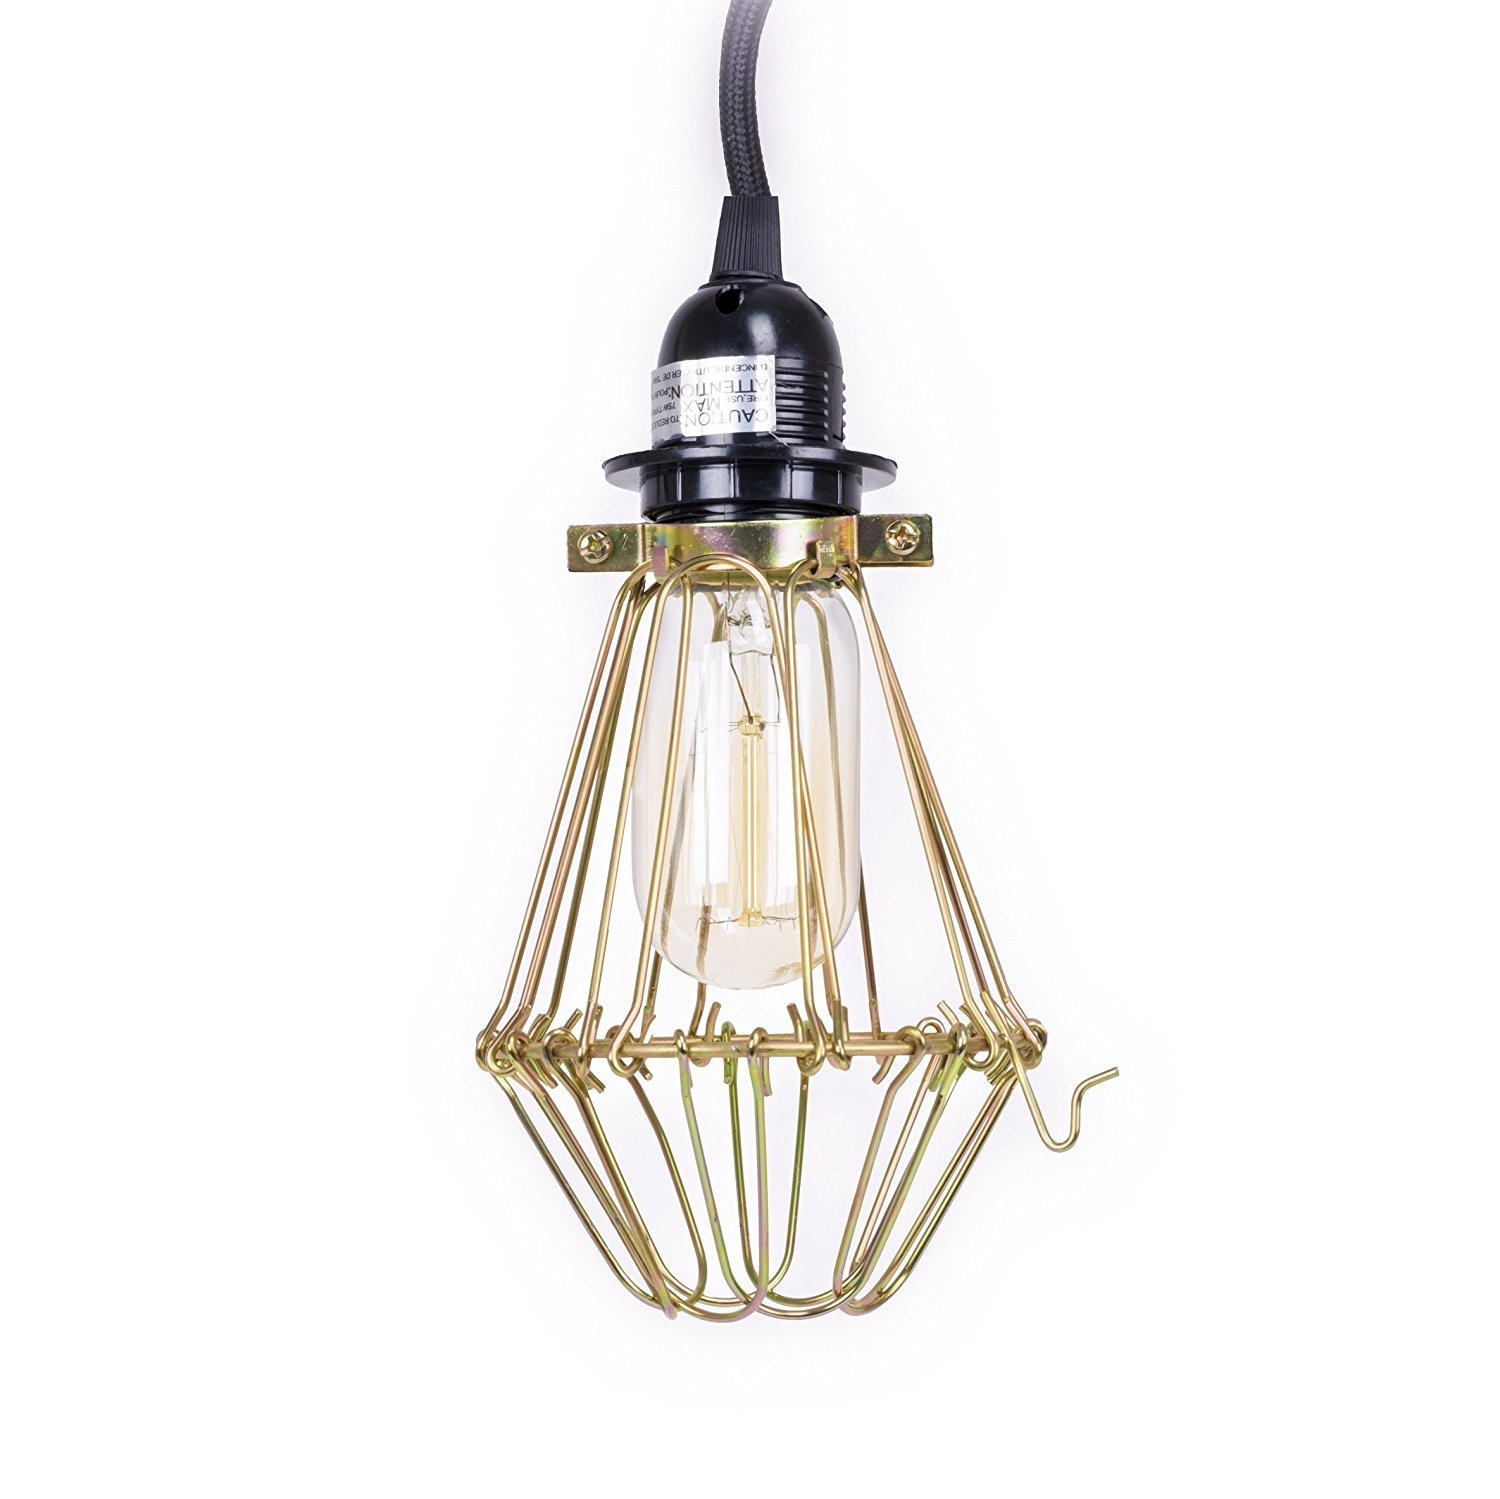 Rustic State Modern Design Metal Wire Adjustable Pendant Cage Light Wiring A Plug To Fixture 15 In Cord With